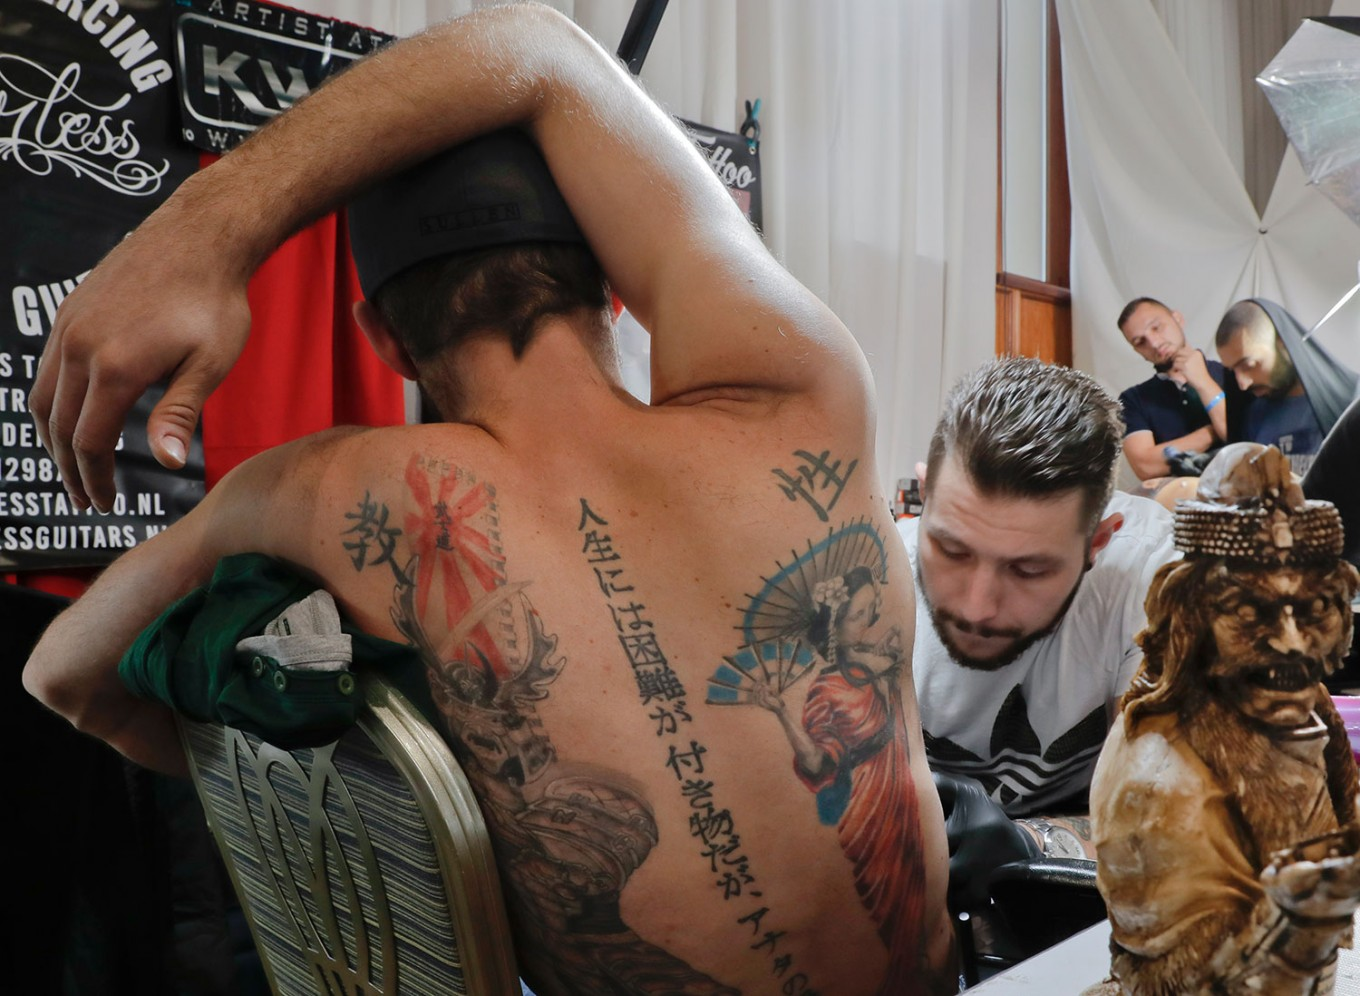 In this picture taken on Sunday, Oct. 16, 2016, a man gets a tattoo during the International Tattoo Convention Bucharest 2016 in Bucharest, Romania. More than 100 tattoo and piercing artists brought their skills and art to a three-day convention in the Romanian capital. AP Photo/Vadim Ghirda